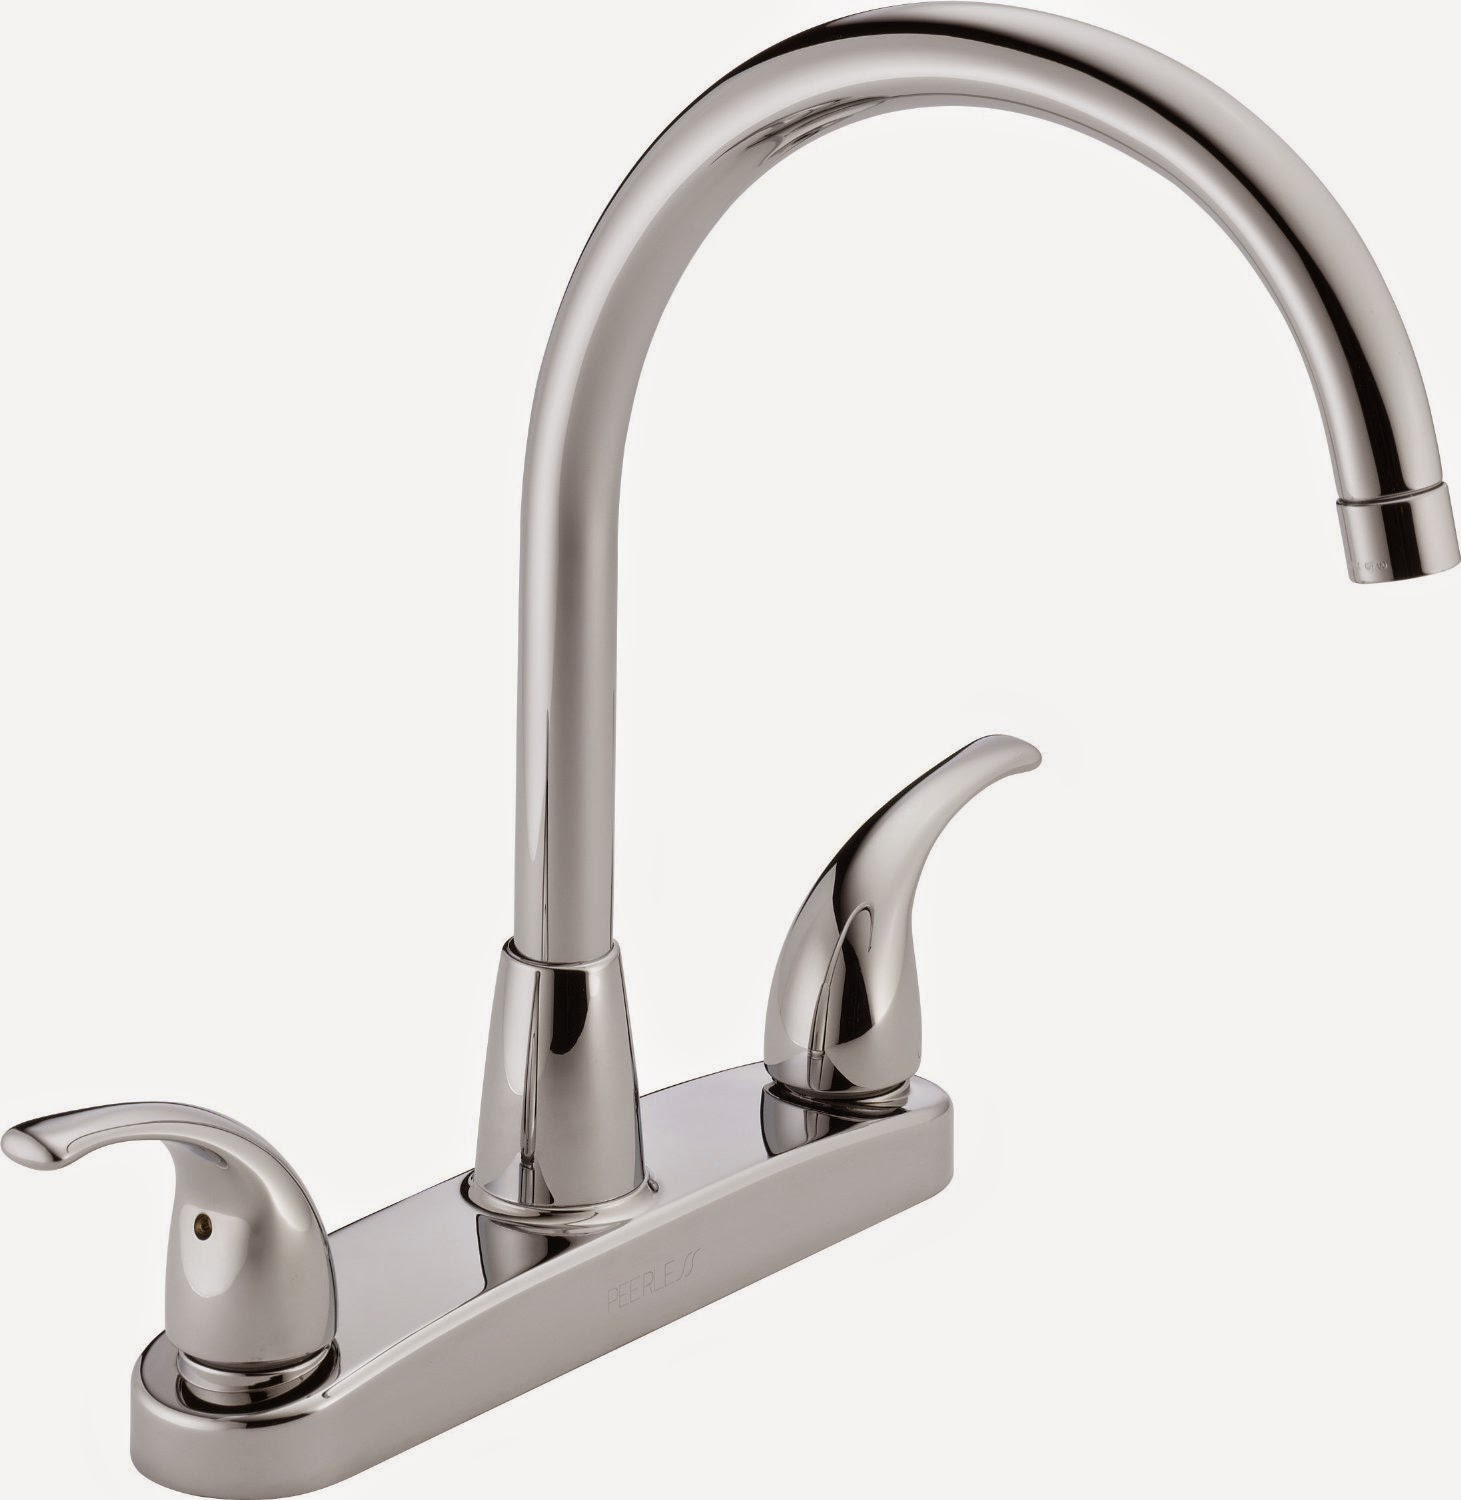 Don't Like Your RV Faucets? Change Them! | Hectic Short Trip RVing